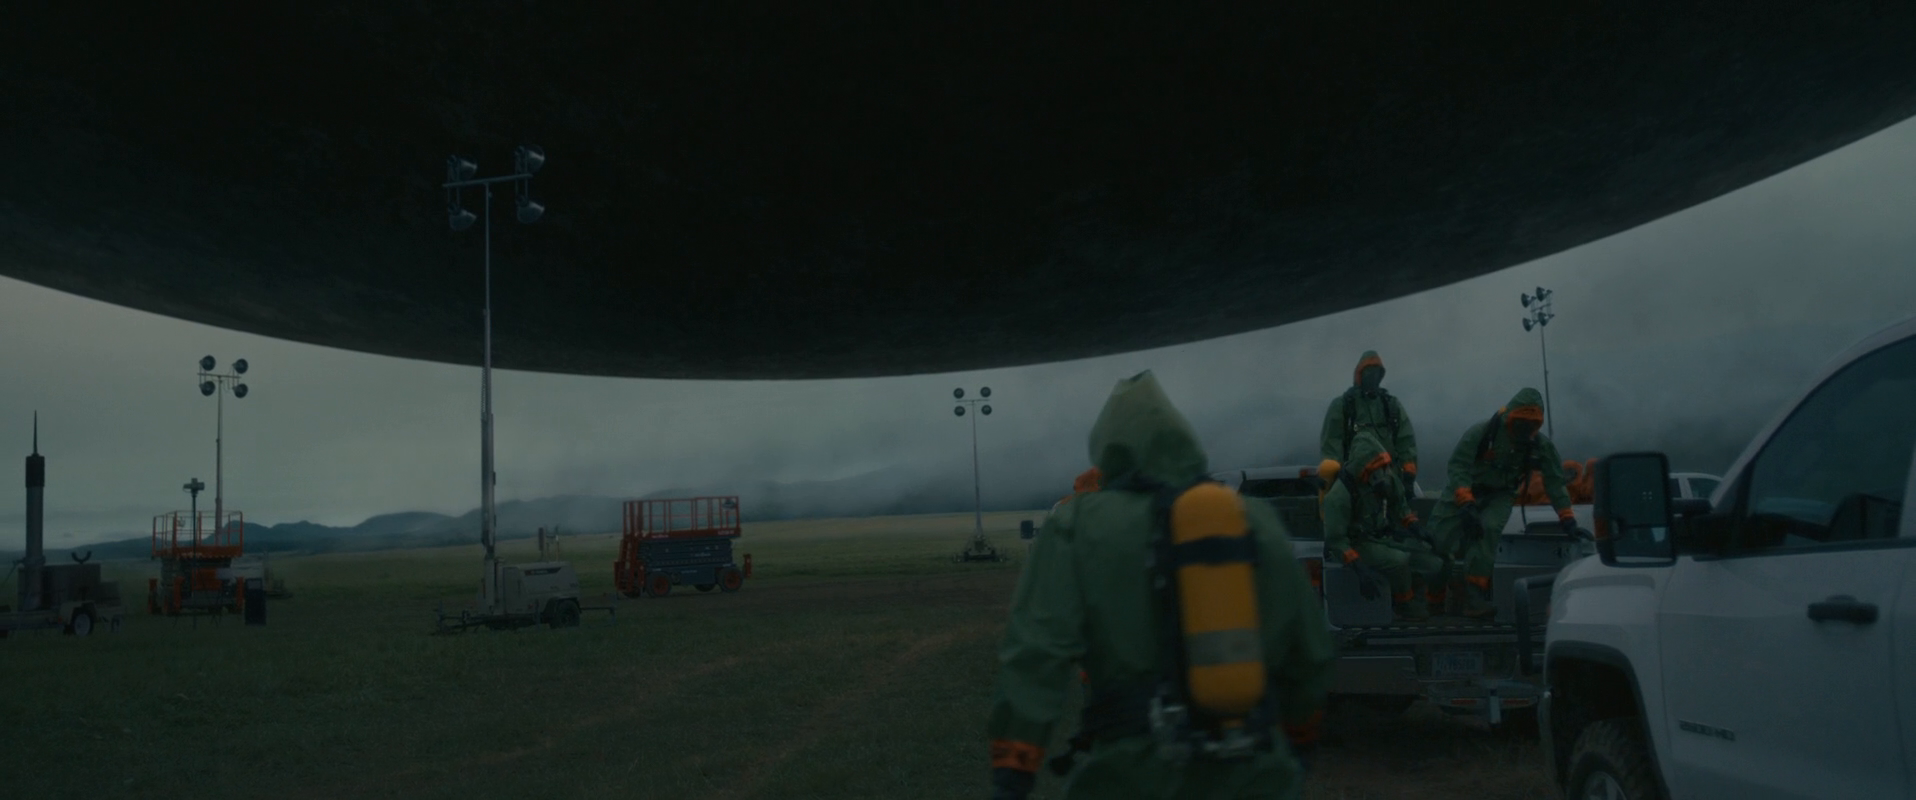 Arrival(2016) image